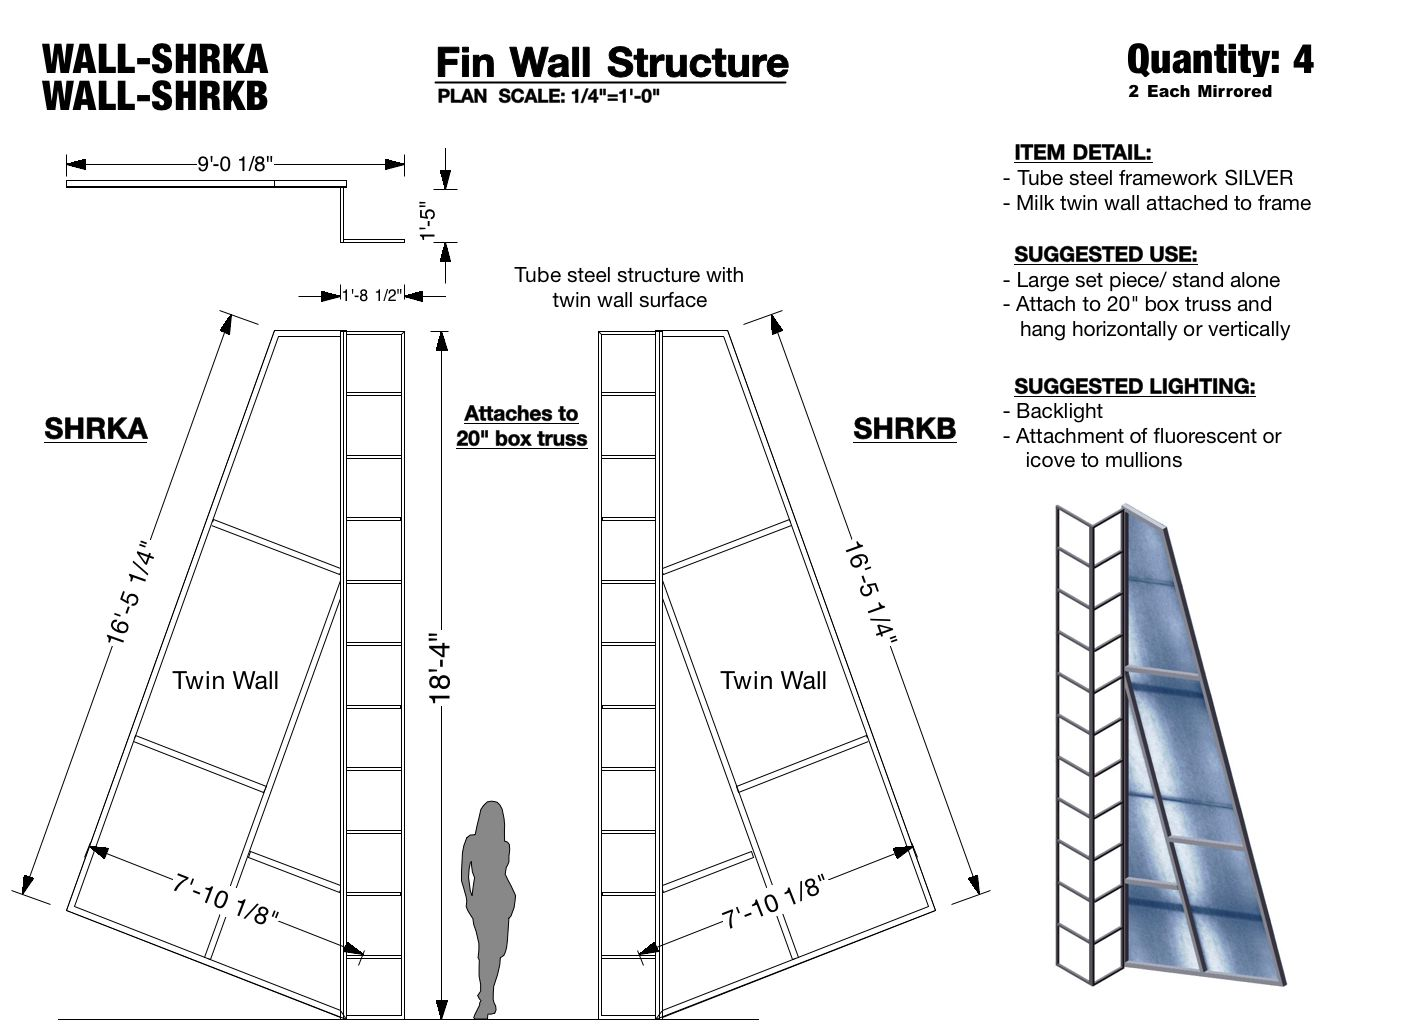 Fin Wall Structure